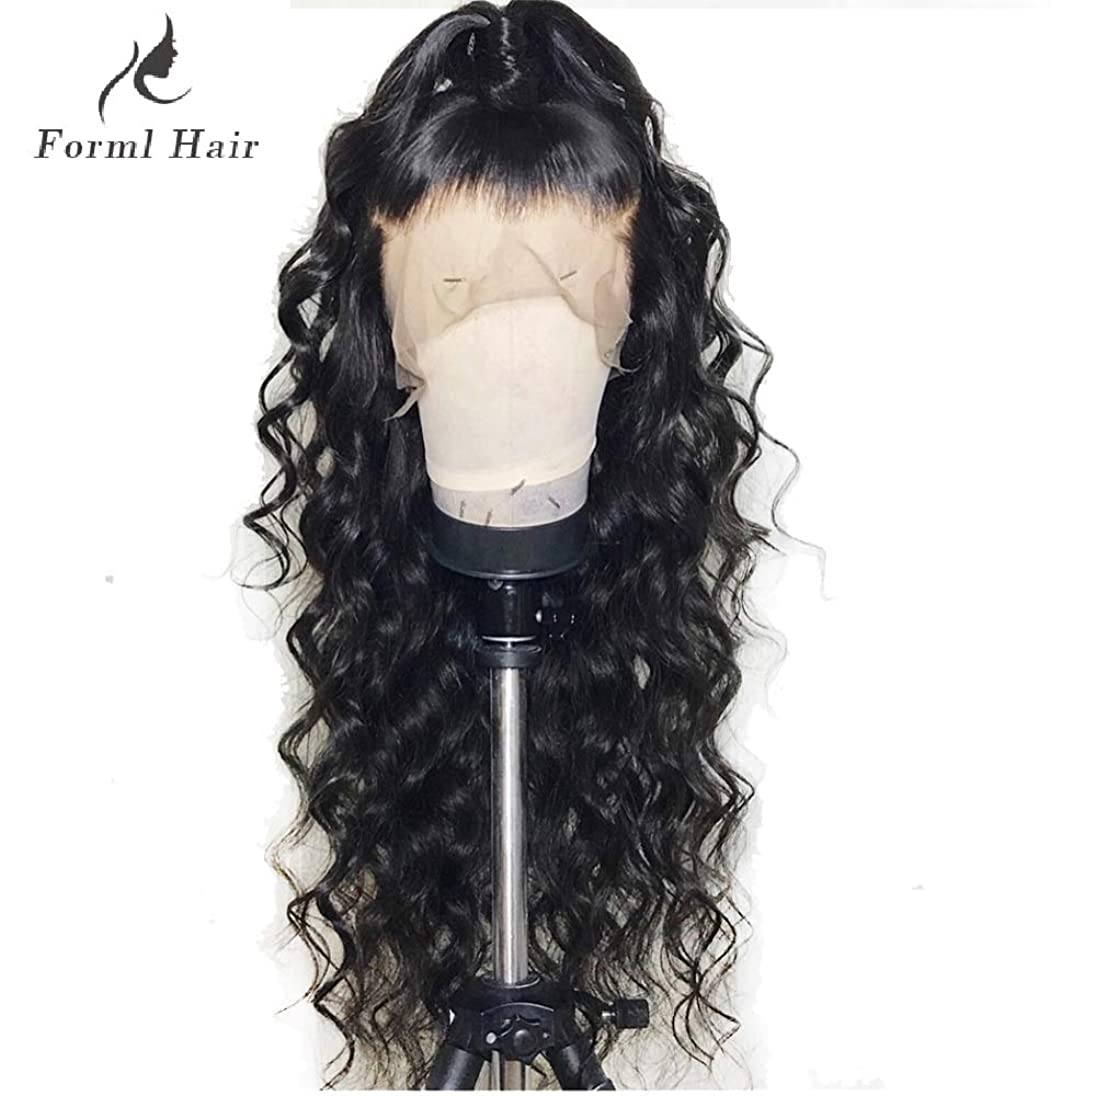 Formal hairLoose Curly Wave Lace Front Human Hair Wigs-Glueless 130% Density Brazilian Virgin Remy Wigs with Baby Hair For Black Woman 20Inch Natural Color